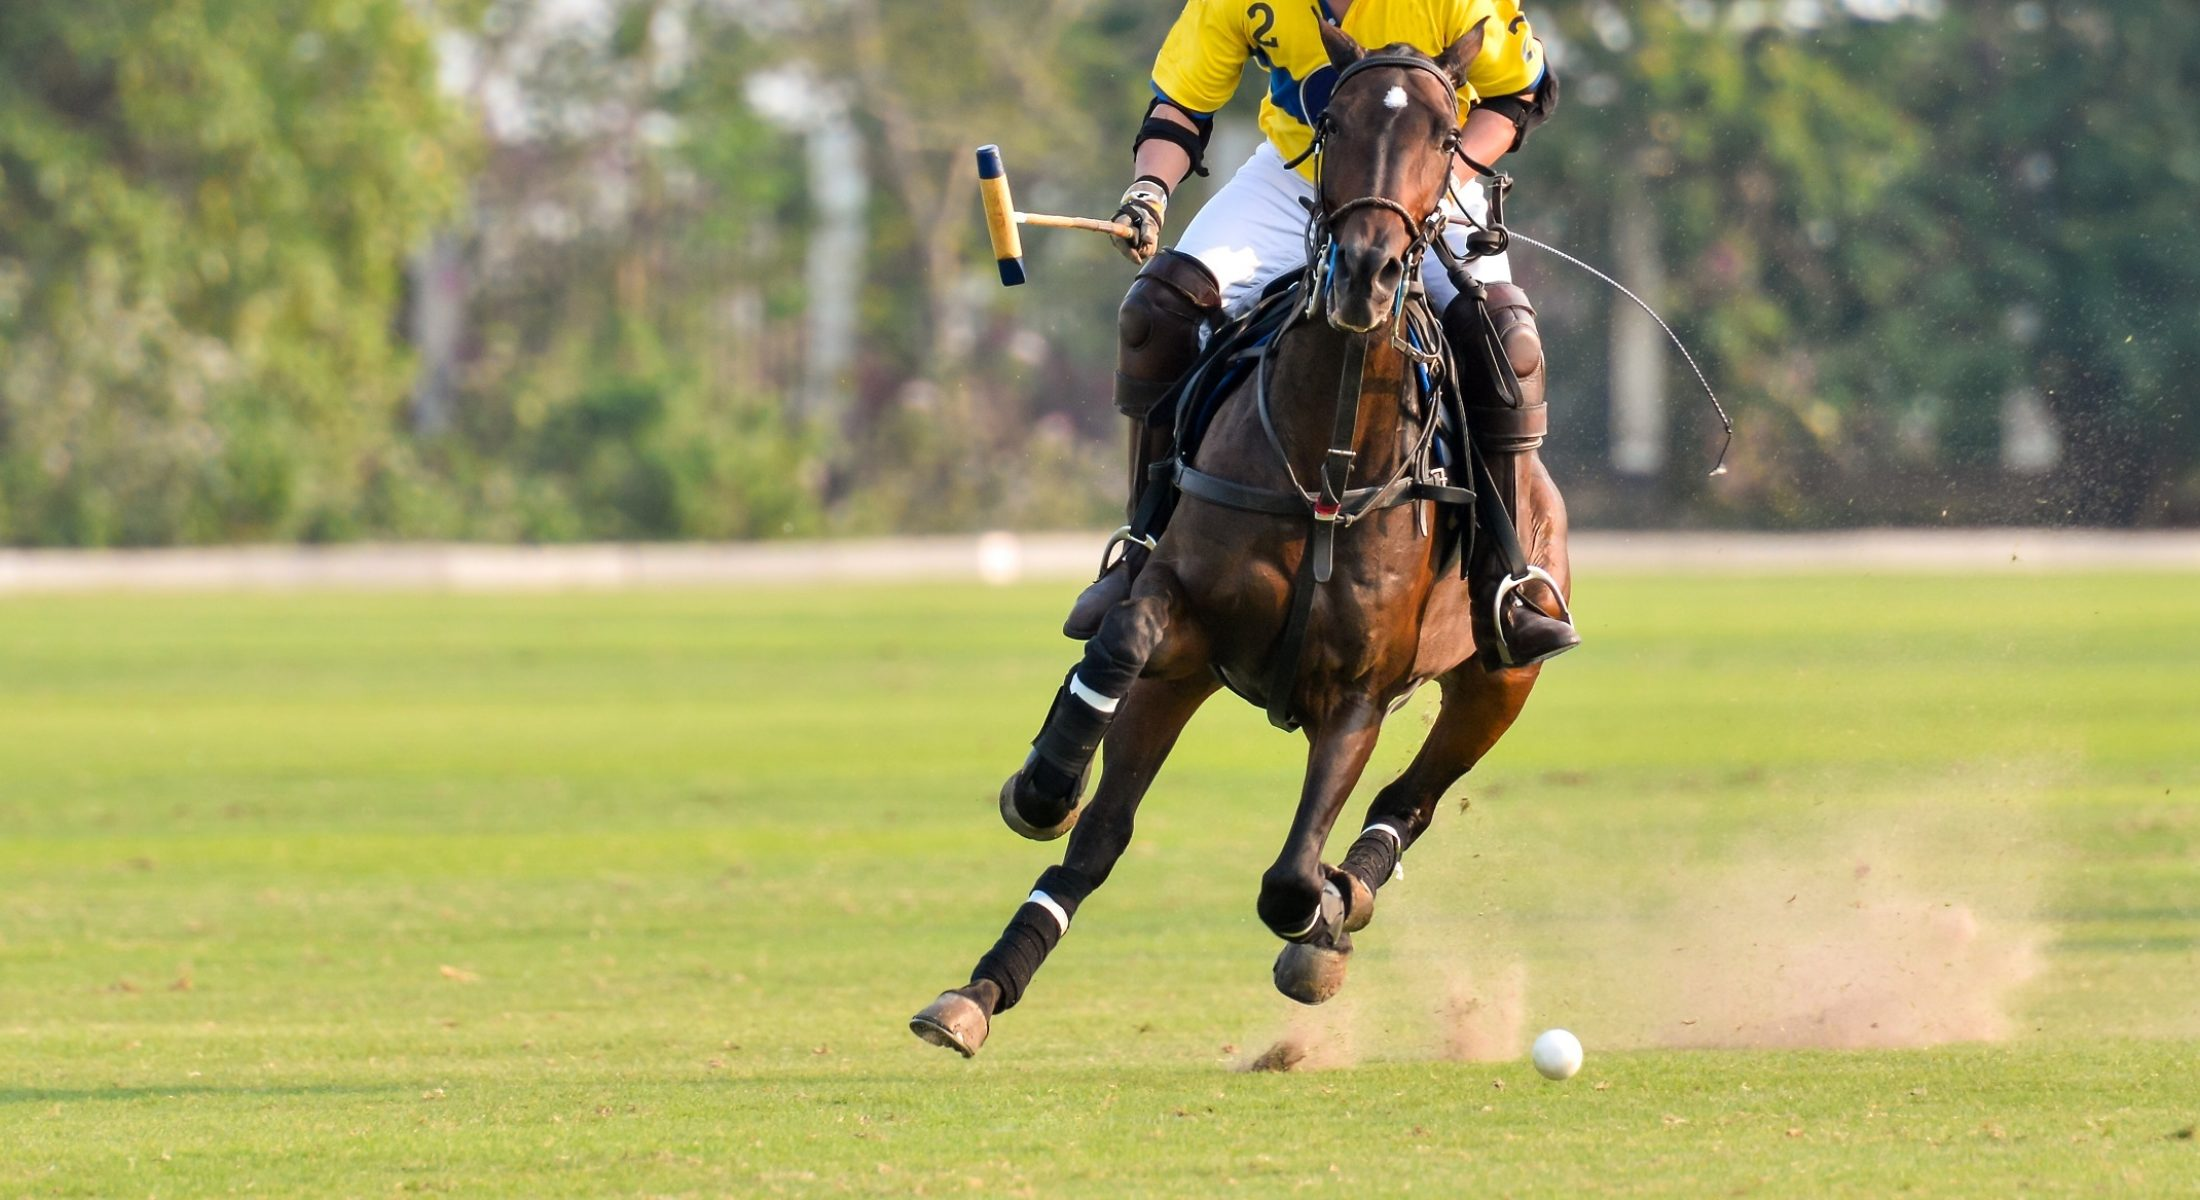 Polo by the Bay at Sandstone Point Hotel in 2020 is an inaugural event